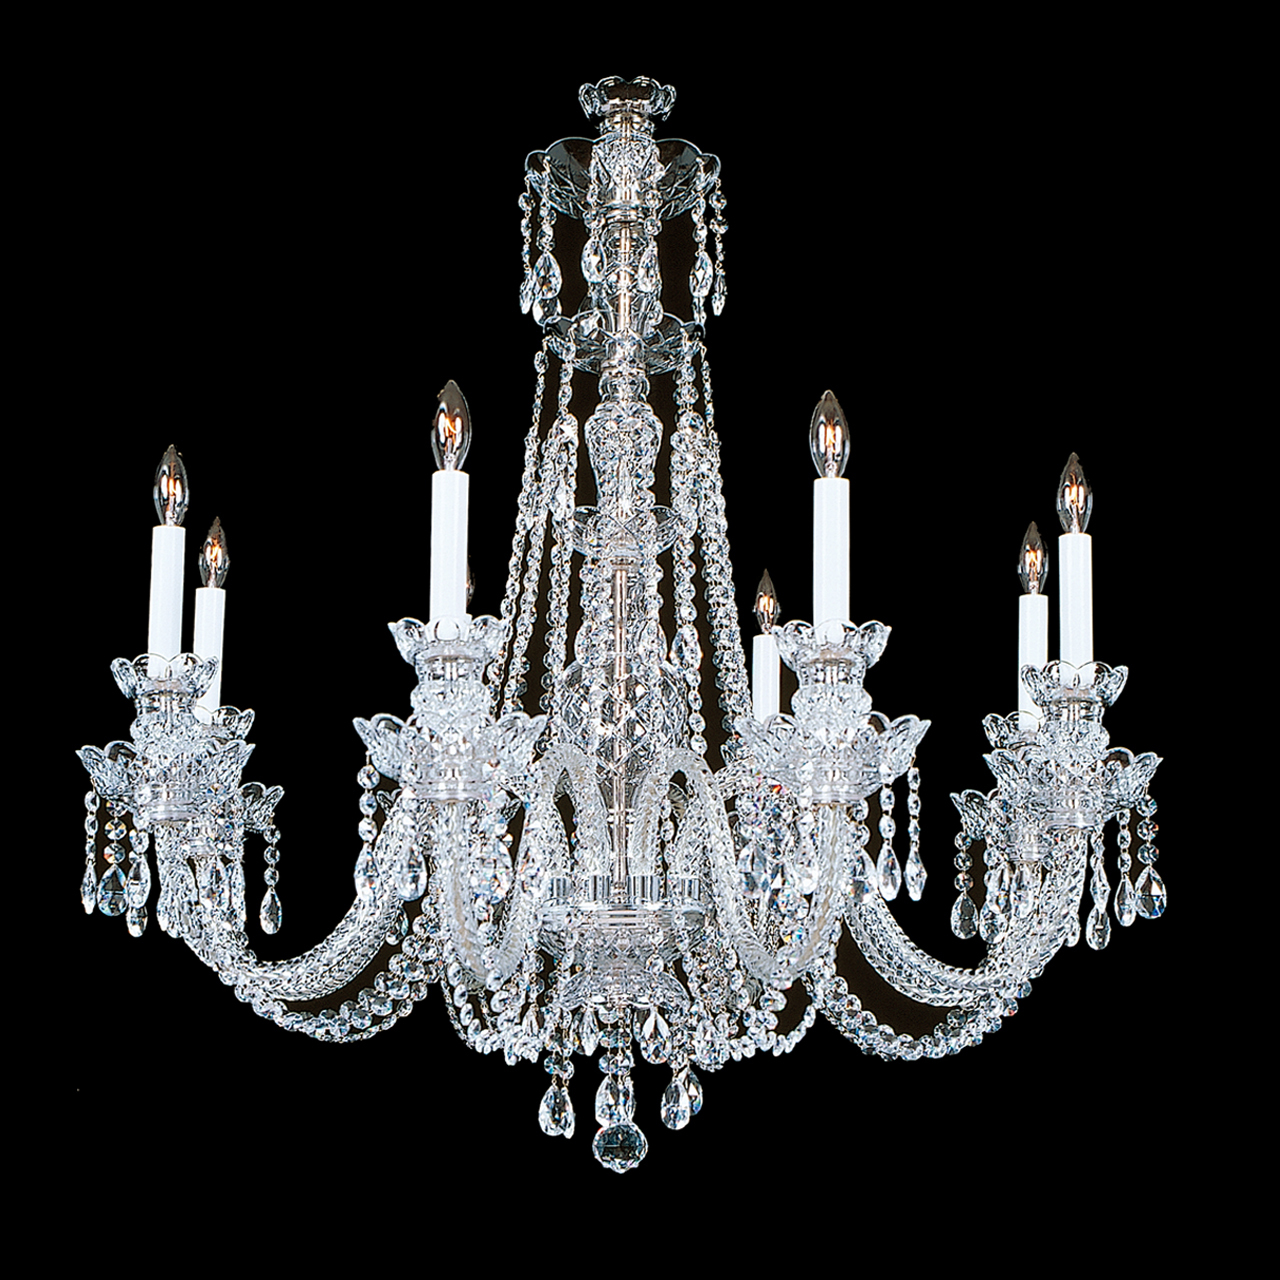 Swarovski Crystal Dollhouse Chandelier: Chandeliers With Swarovski Crystals